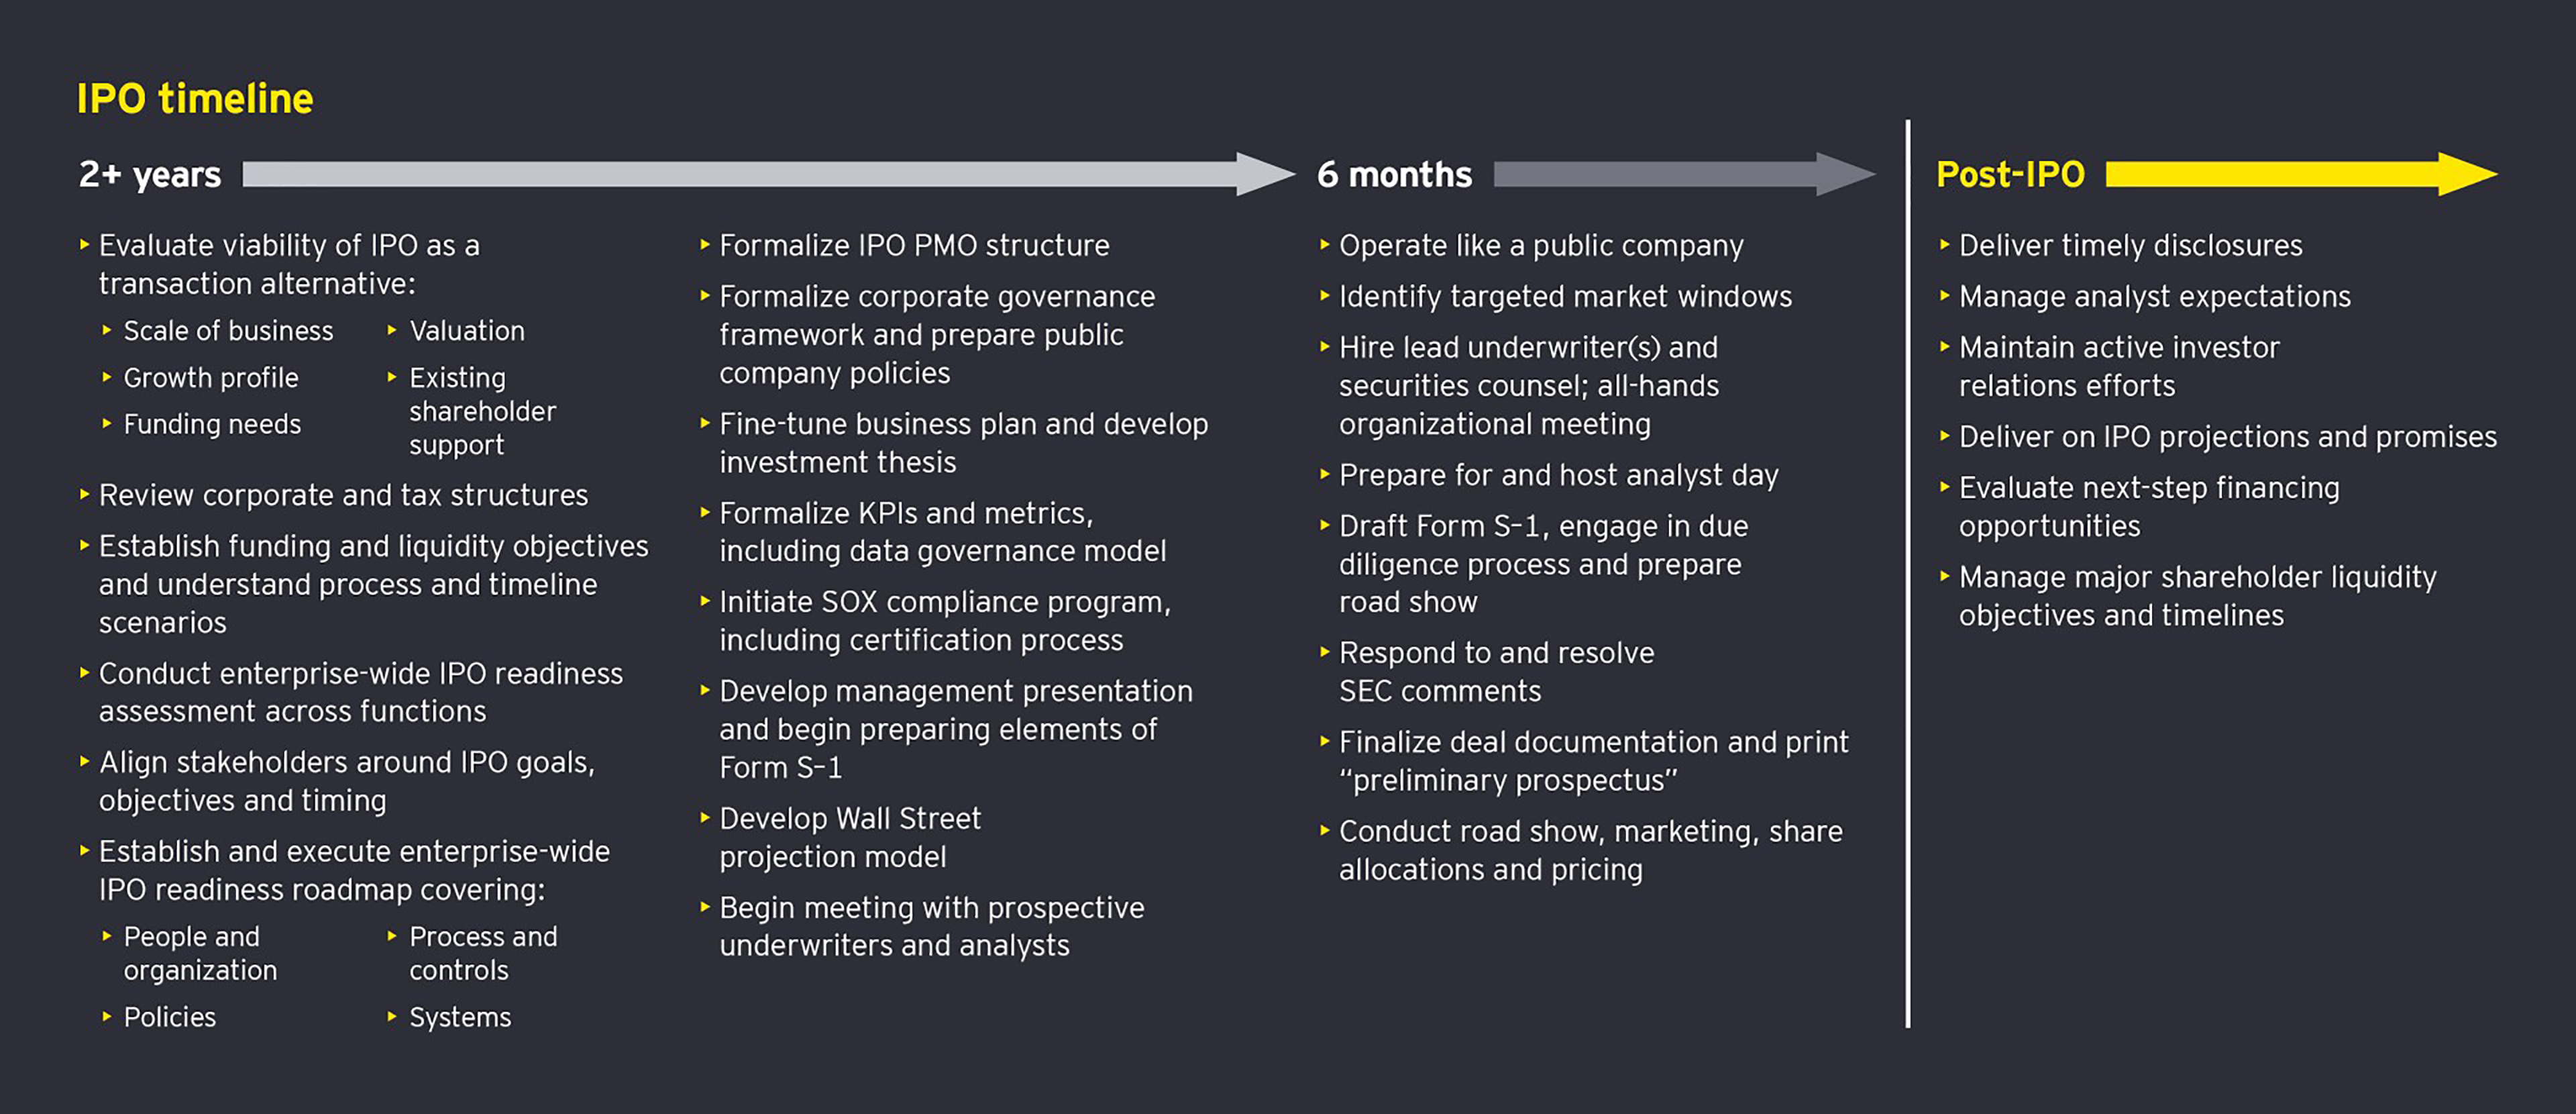 EY - IPO-readiness-timeline